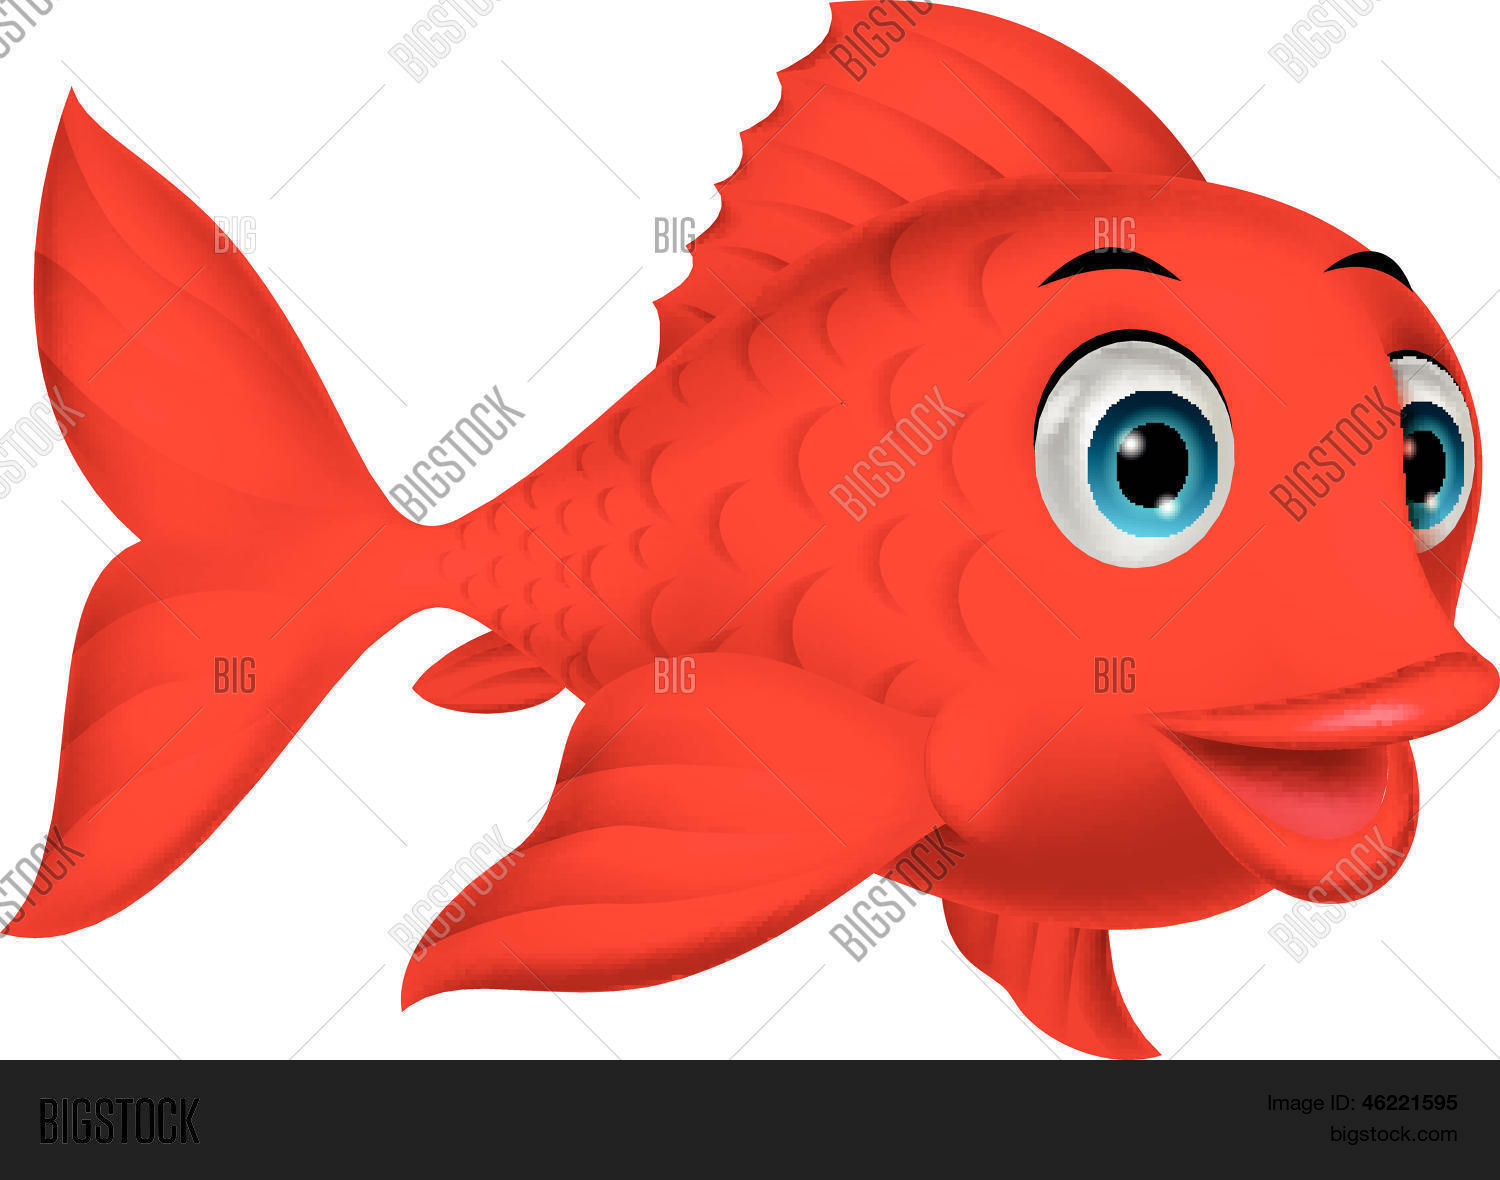 Dessin anim mignon poisson rouge photos et vecteurs de for Aquarium poisson rouge dessin